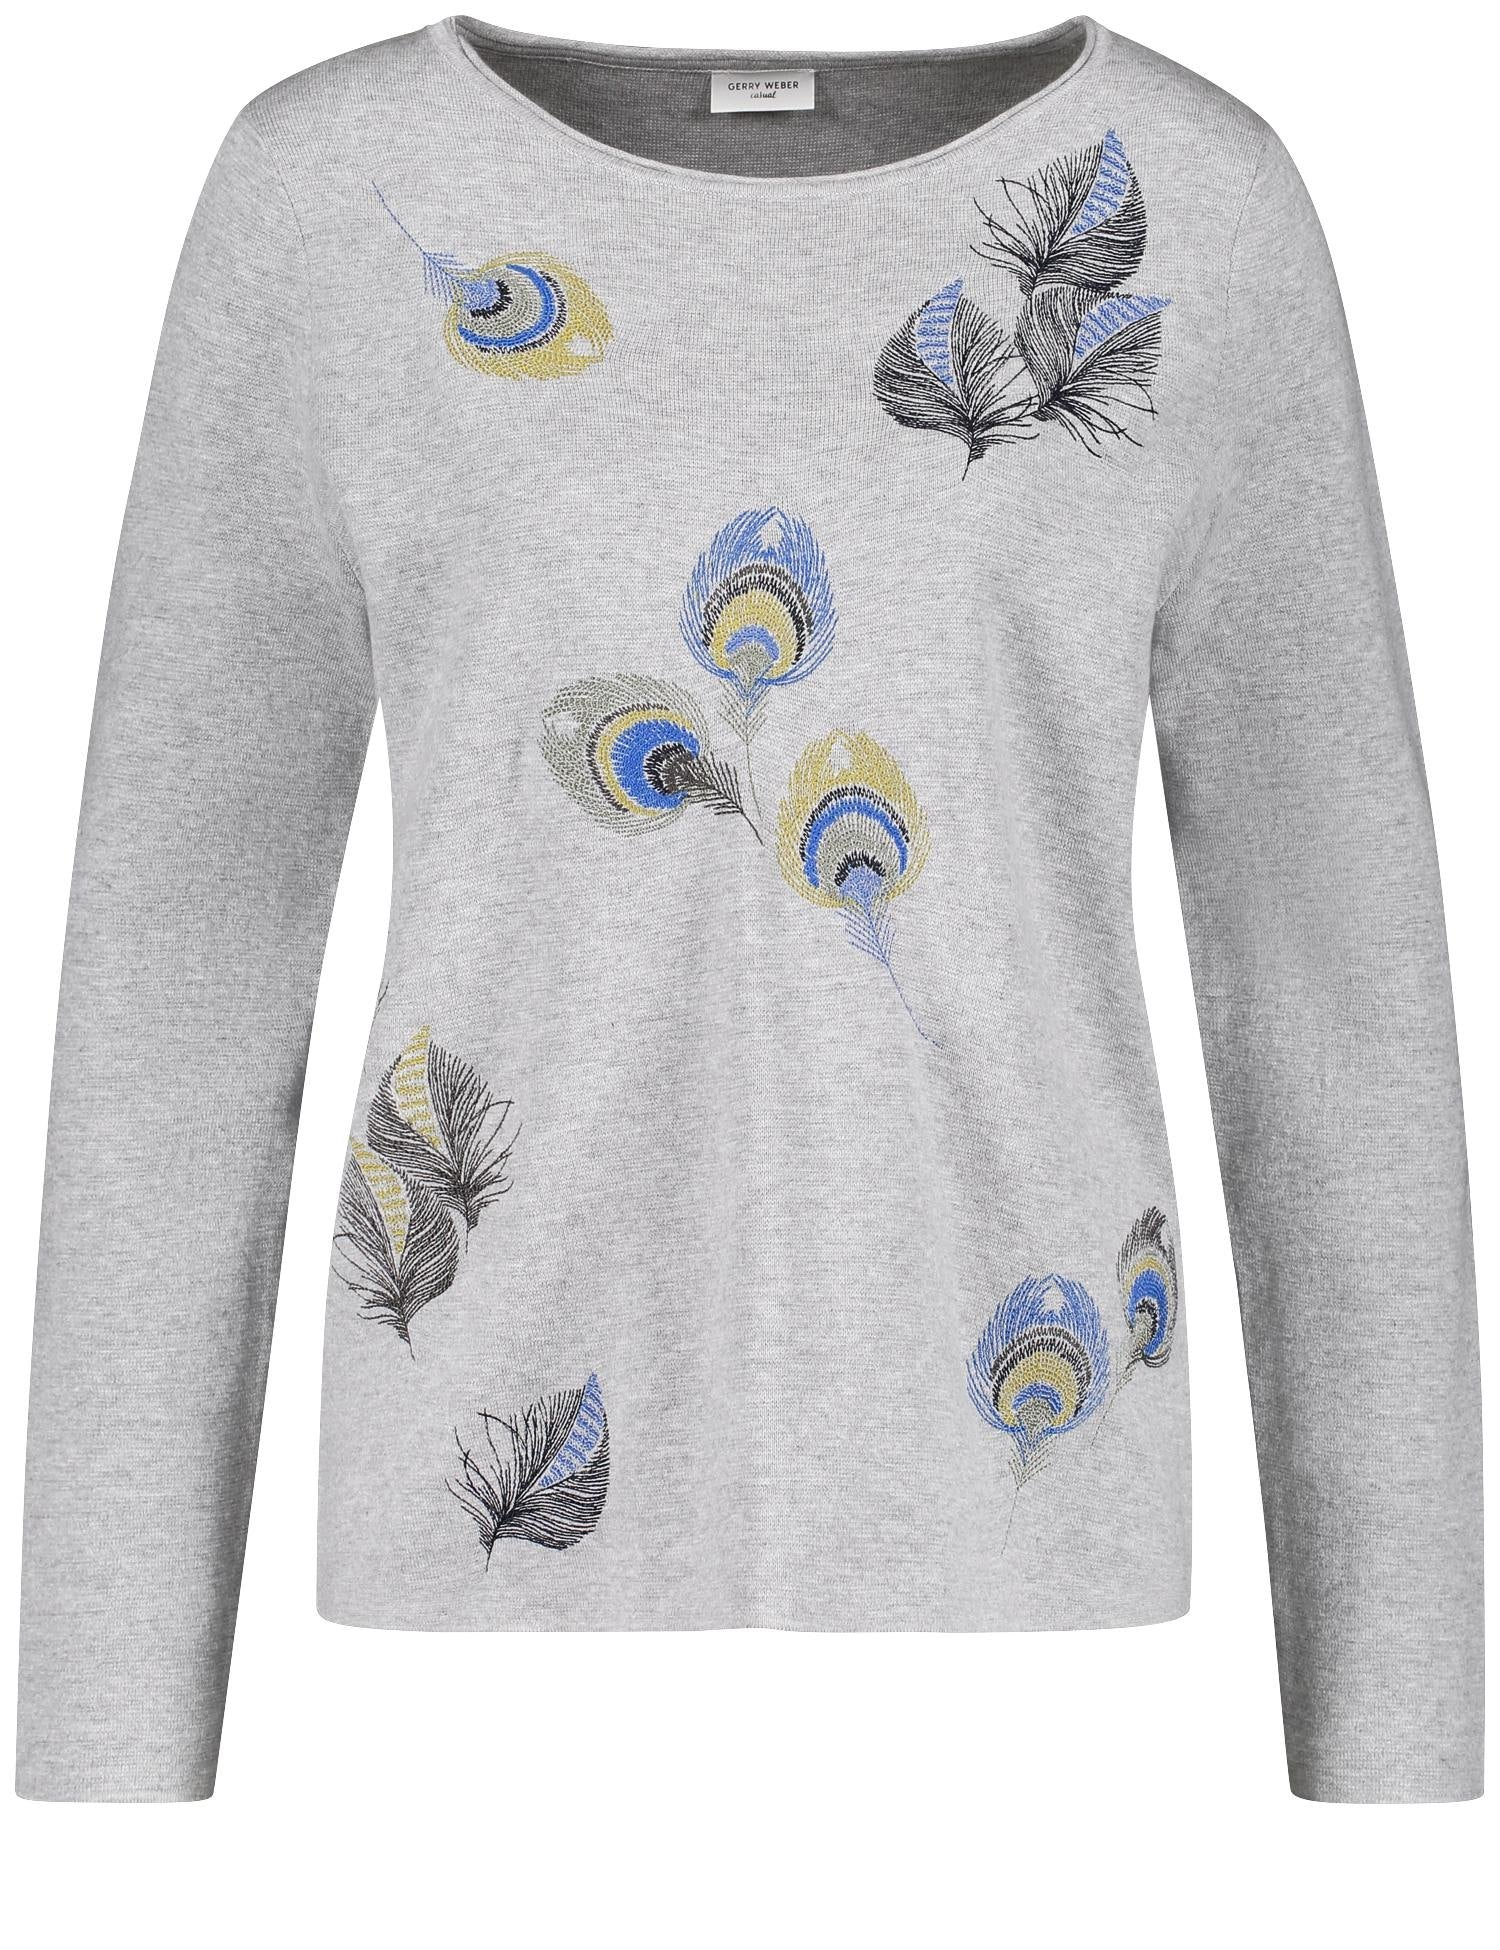 Embroidered Peacock Sweater by Gerry Weber at Jophiel